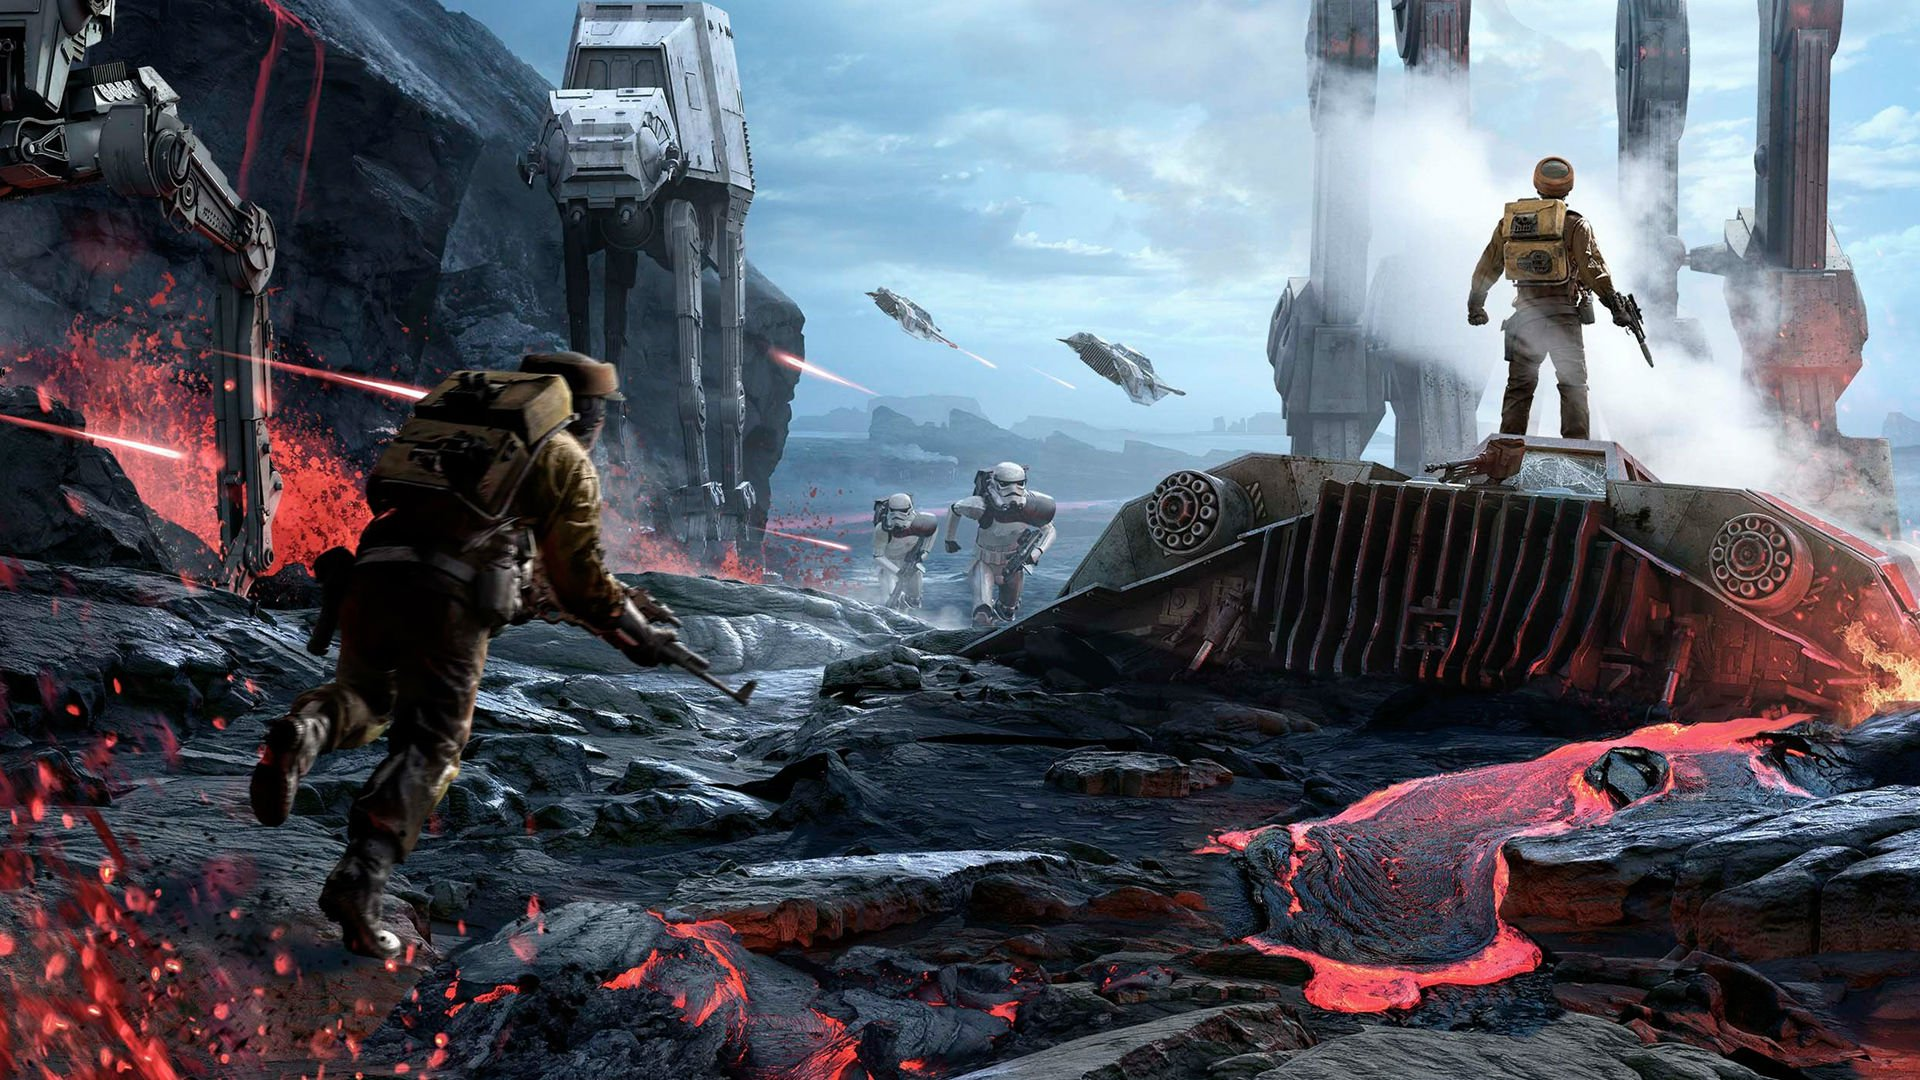 Starwars Battlefront Wallpaper Posted By Ethan Anderson